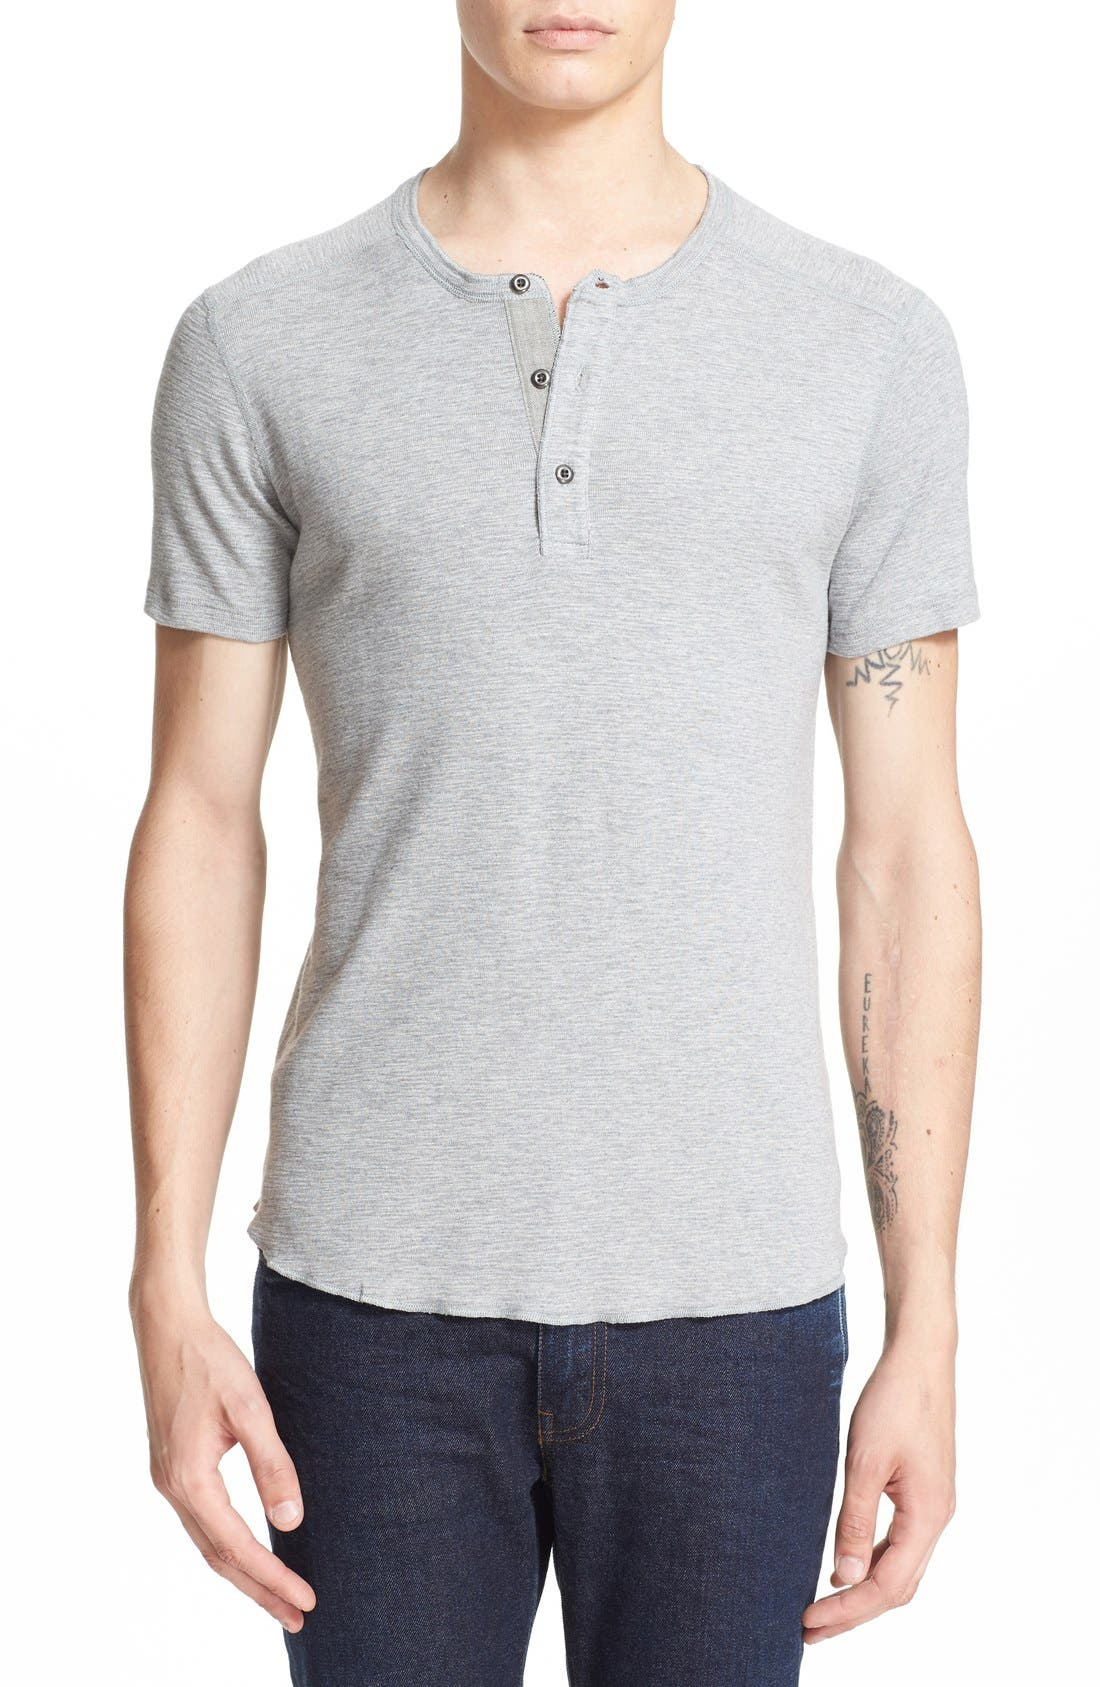 wings + horns 'Base' Short Sleeve Henley